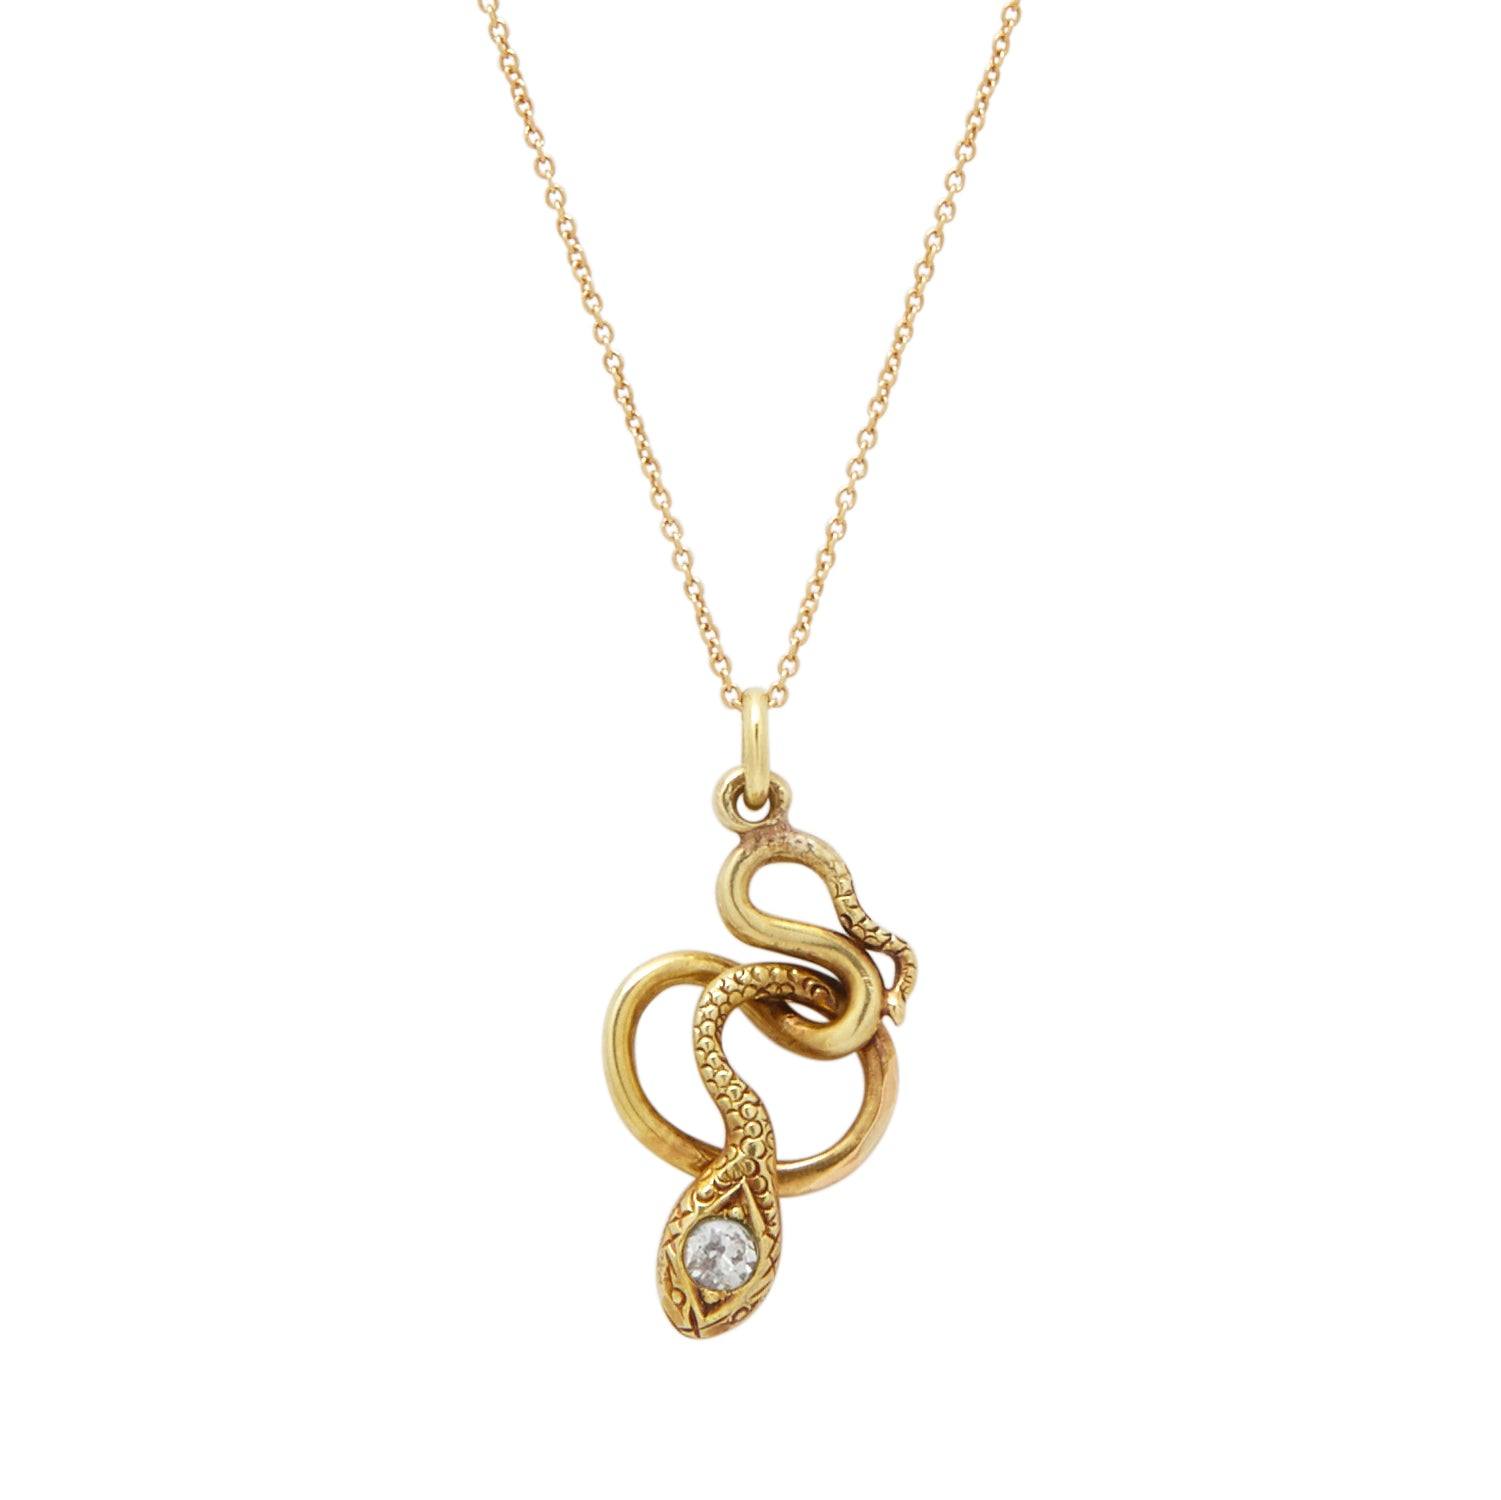 The F&B Yellow Gold Snake Charmer Necklace